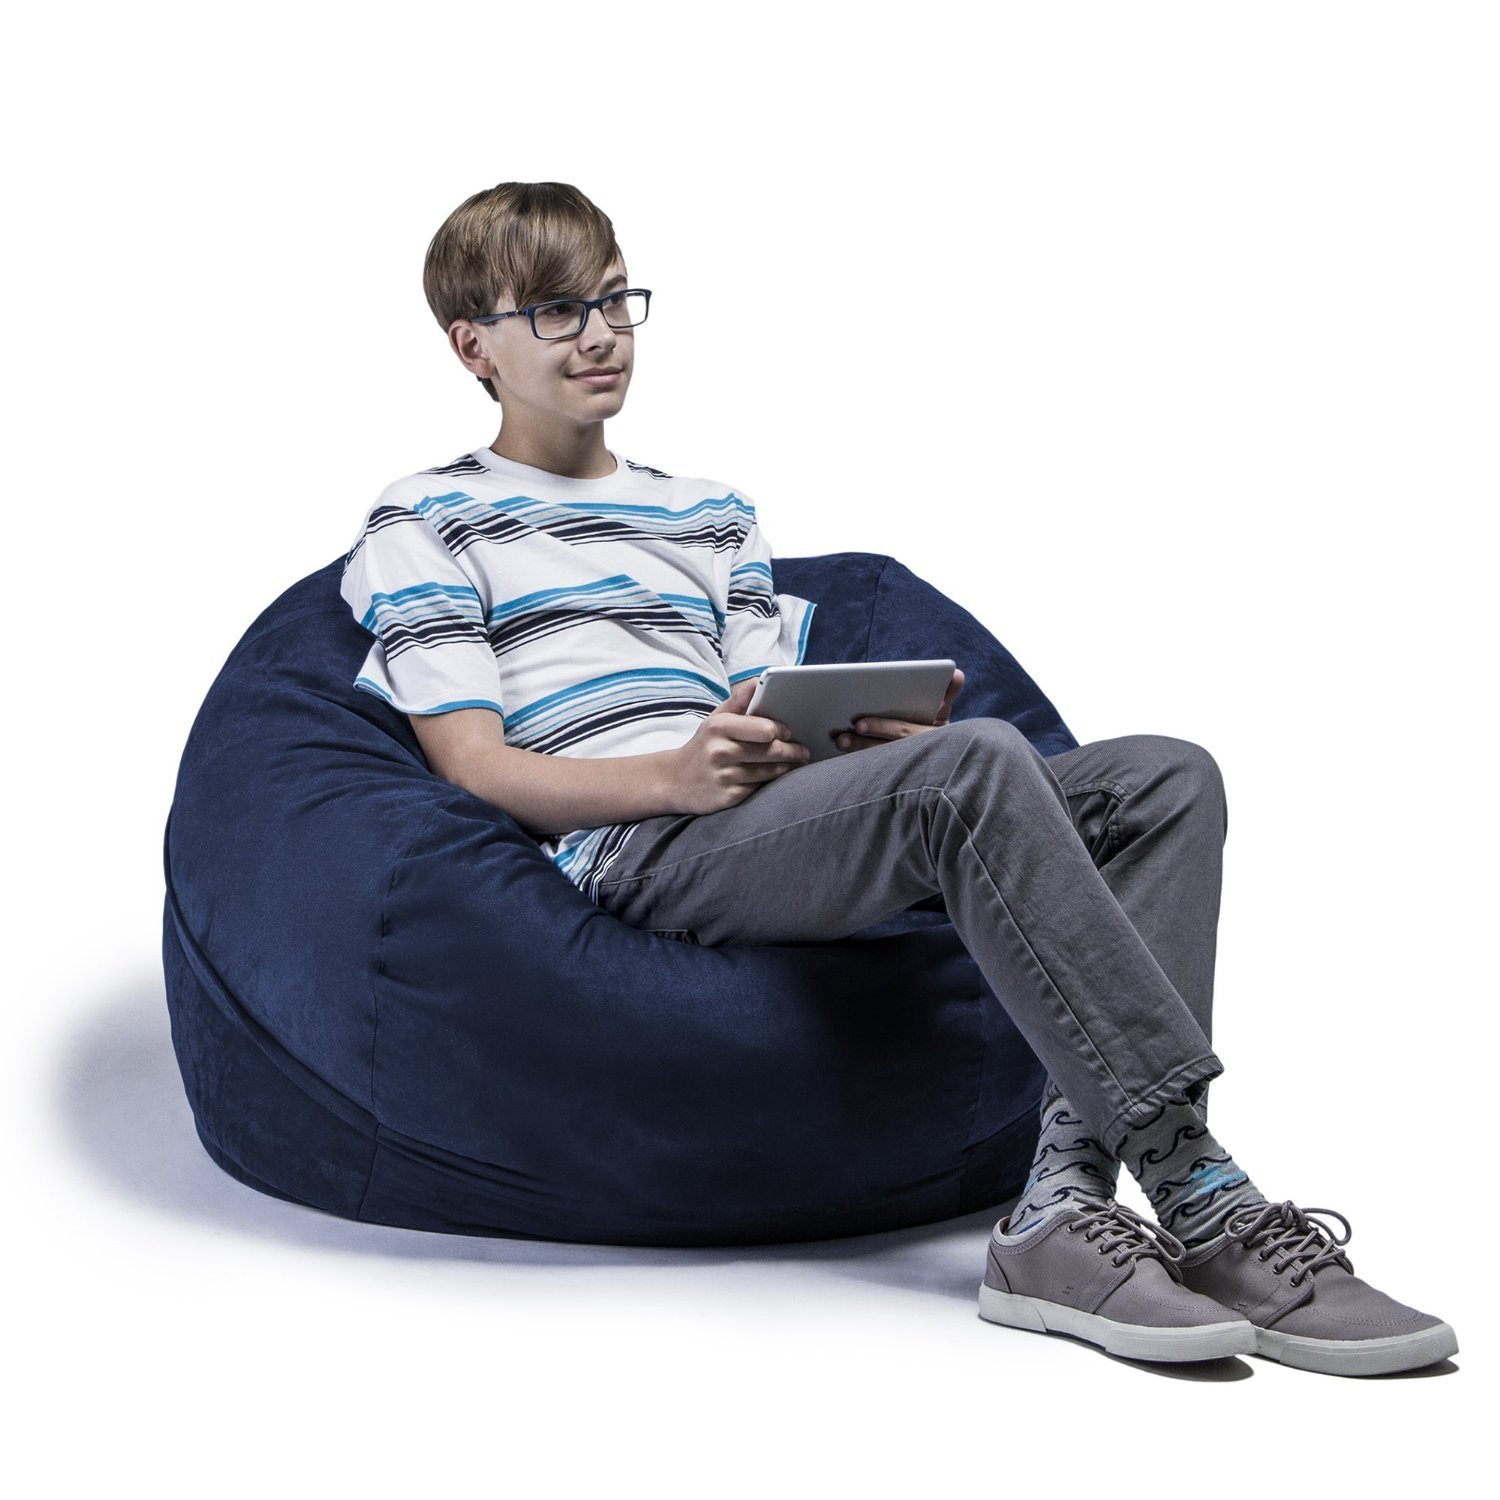 Jaxx Bean Bag Chair with Removable Cover, 3', Navy